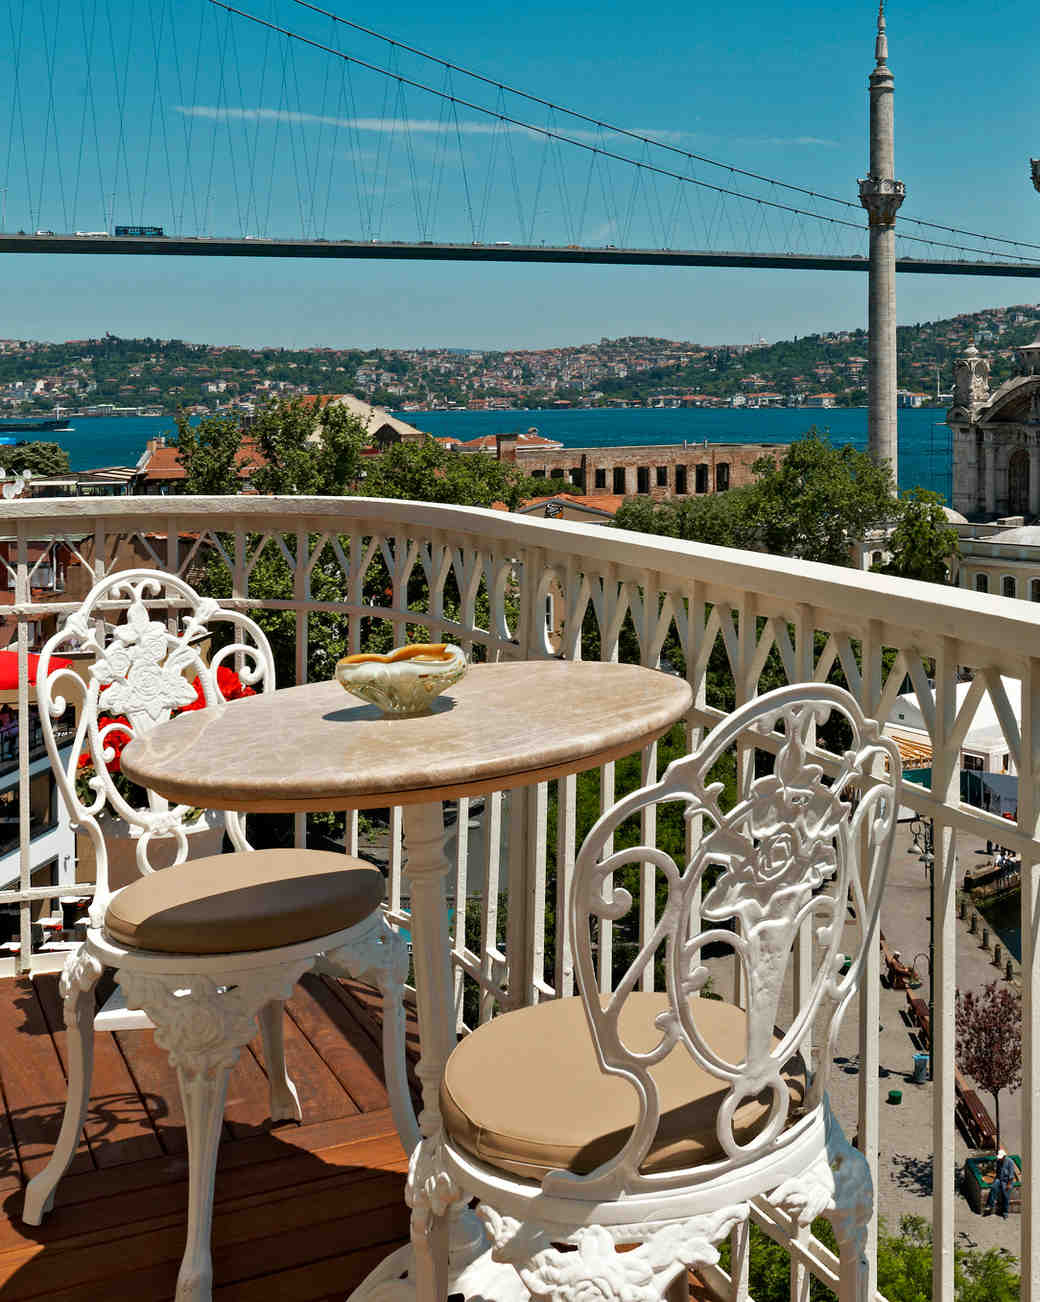 most-romantic-cities-honeymoon-istanbul-house-hotel-1015.jpg